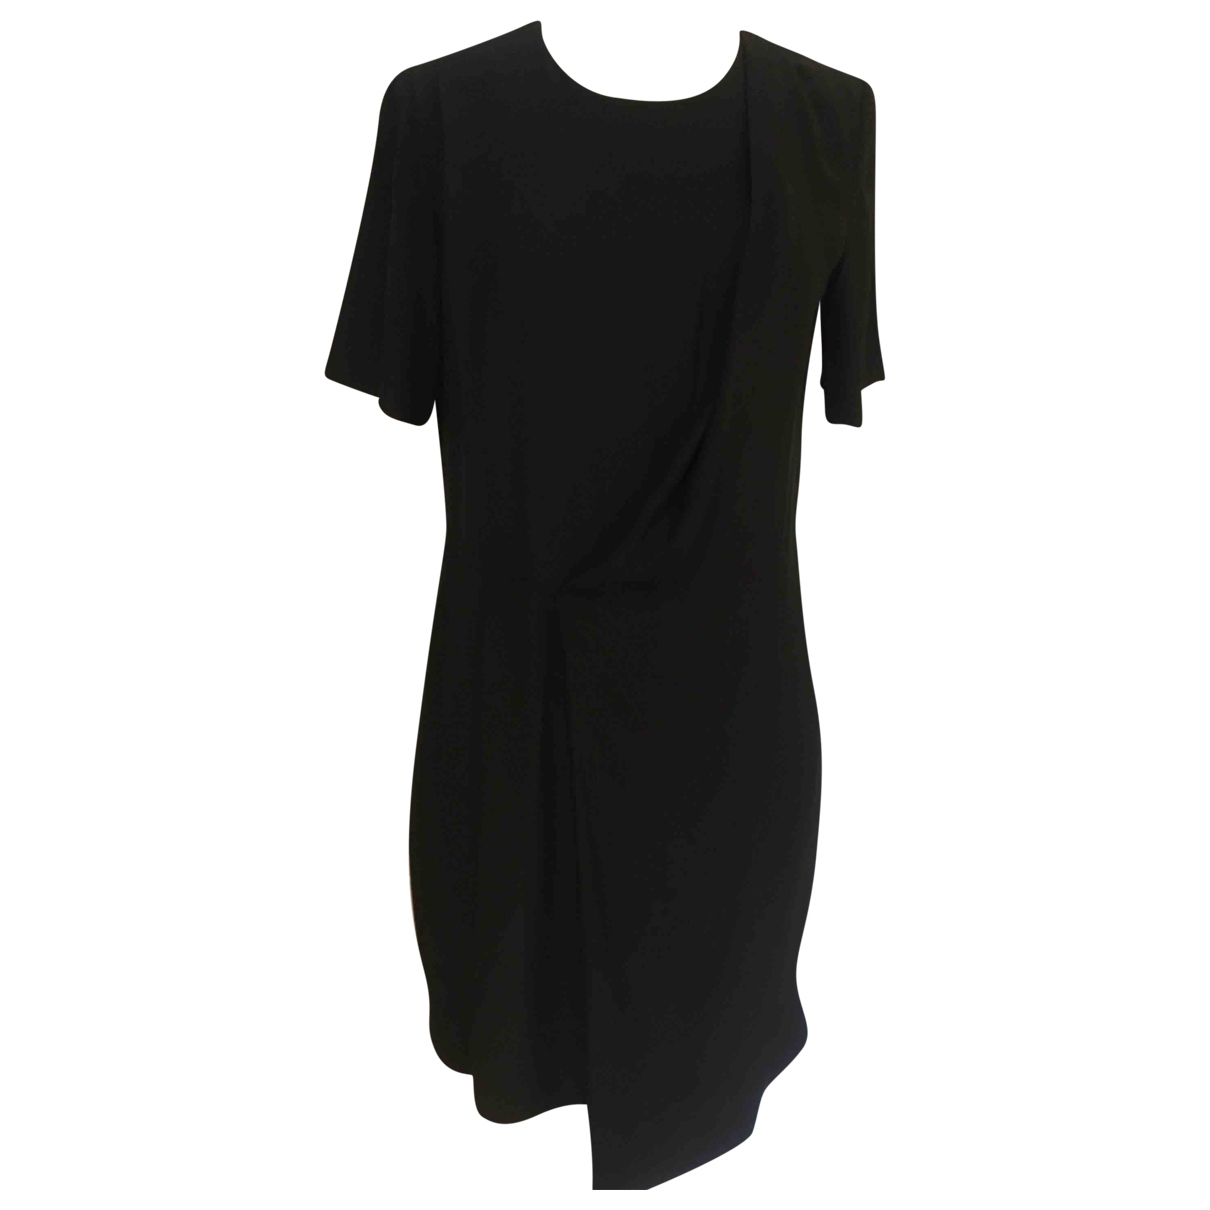 & Stories \N Black Silk dress for Women 40 FR